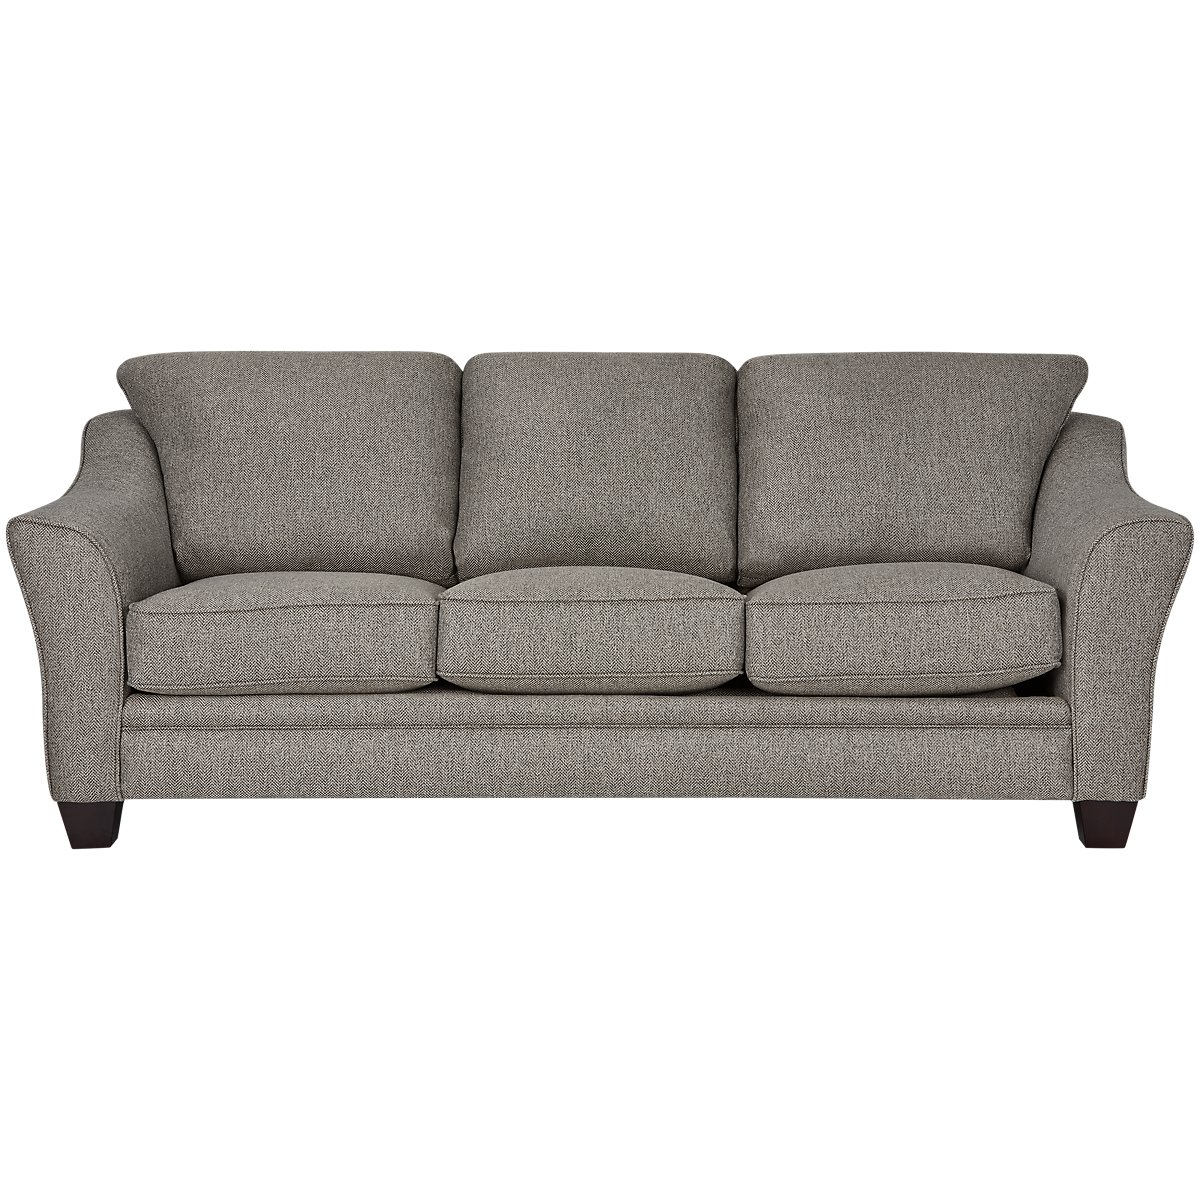 Avery Dark Gray Fabric Sofa